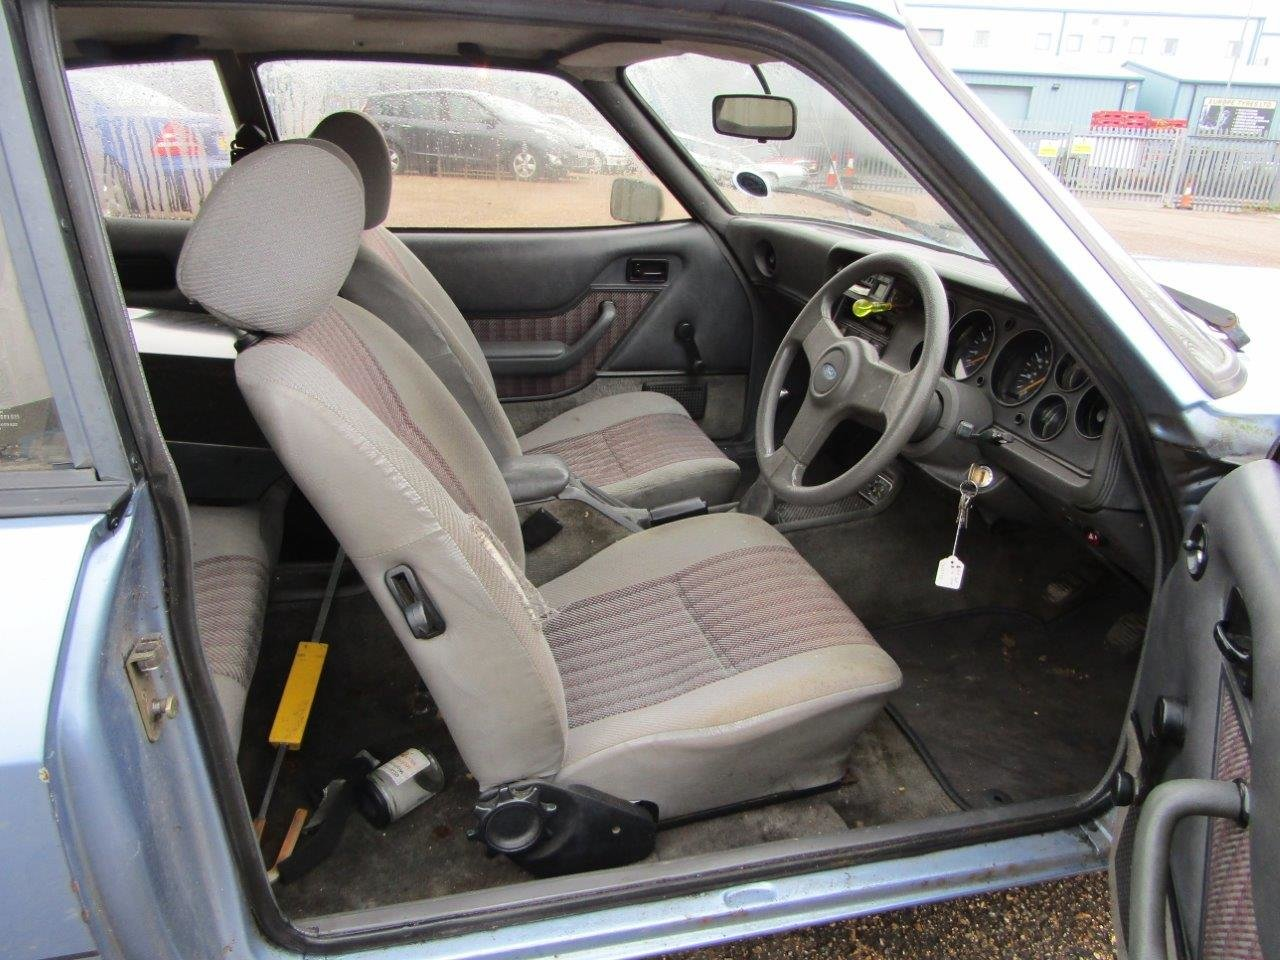 1986 Ford Capri 1.6 Laser at ACA 27th and 28th February For Sale by Auction (picture 7 of 11)